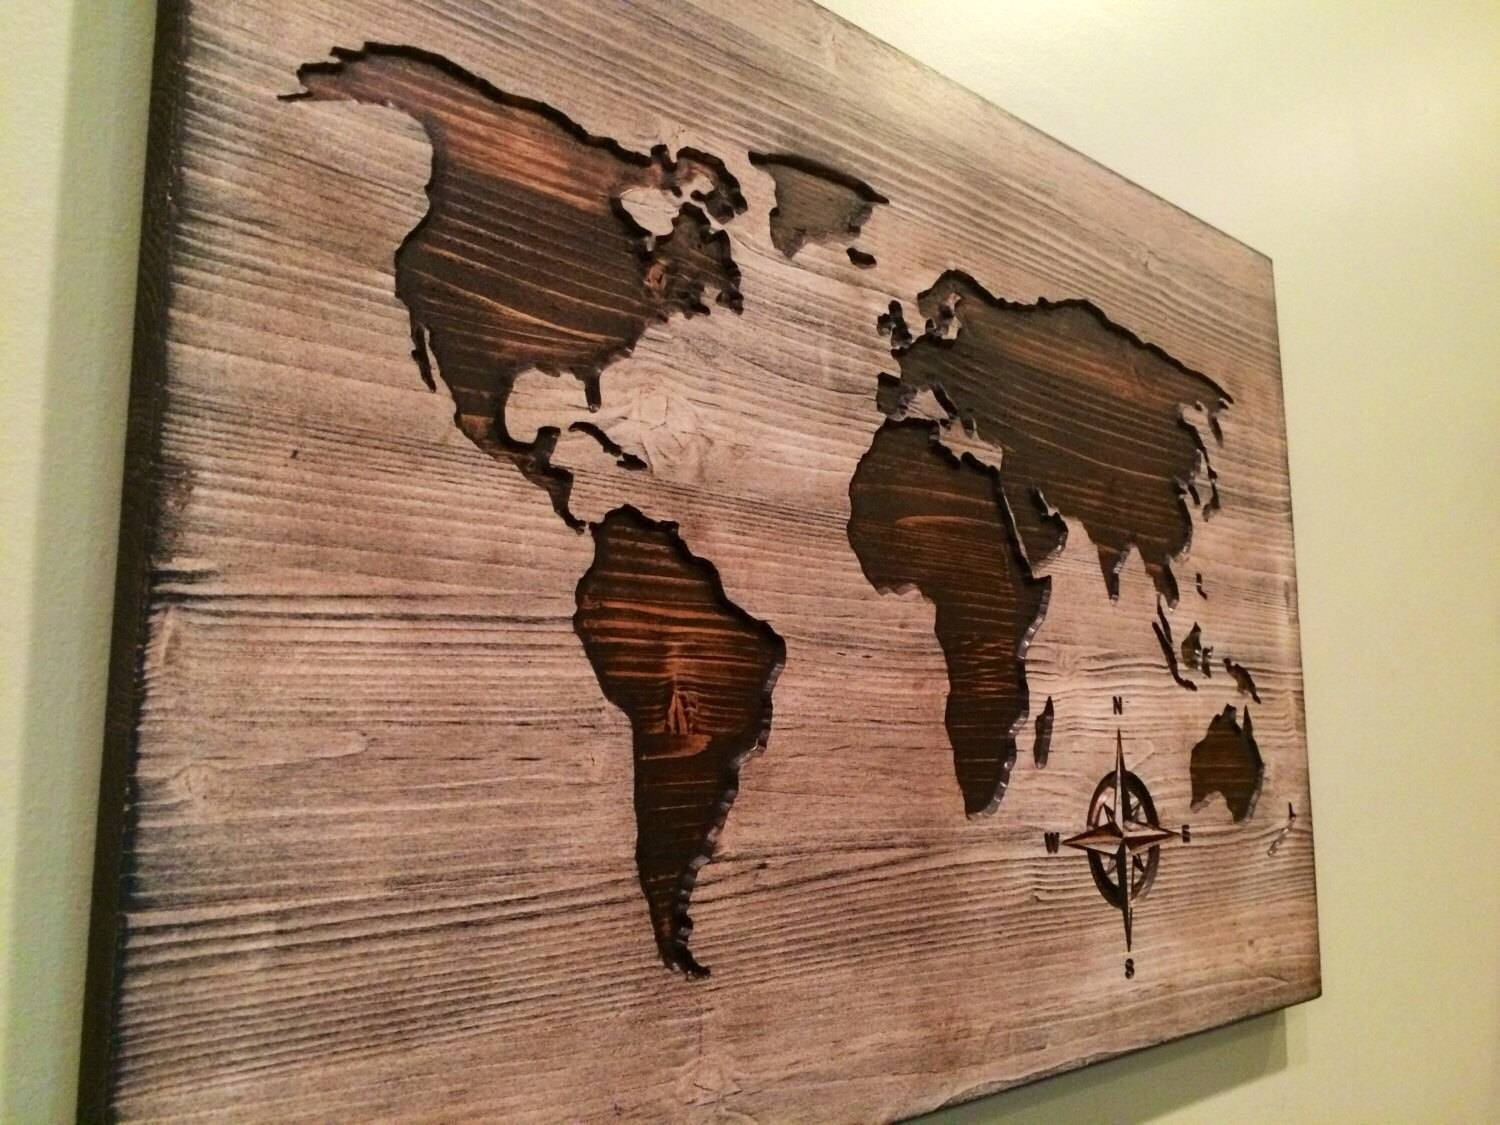 Carved Wooden World Map Wood Wall Art World Map Home Decor Within Most Current Wooden World Map Wall Art (View 5 of 20)